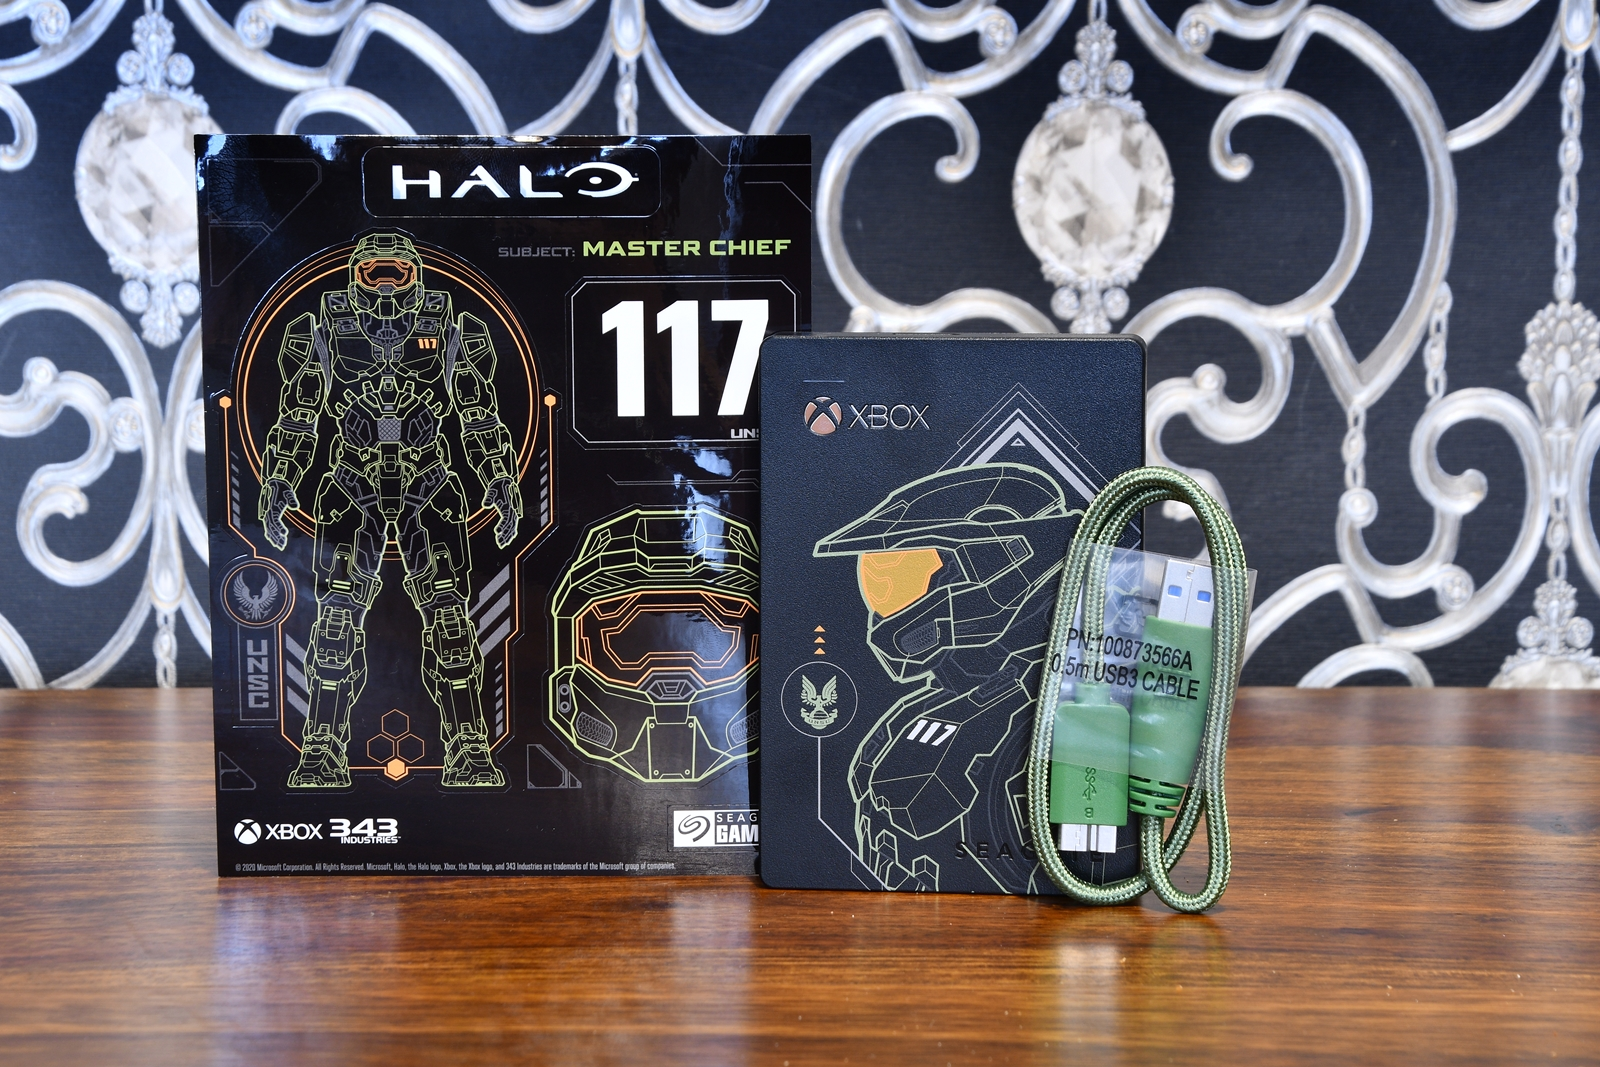 seagate halo master chief limited edition 2tb